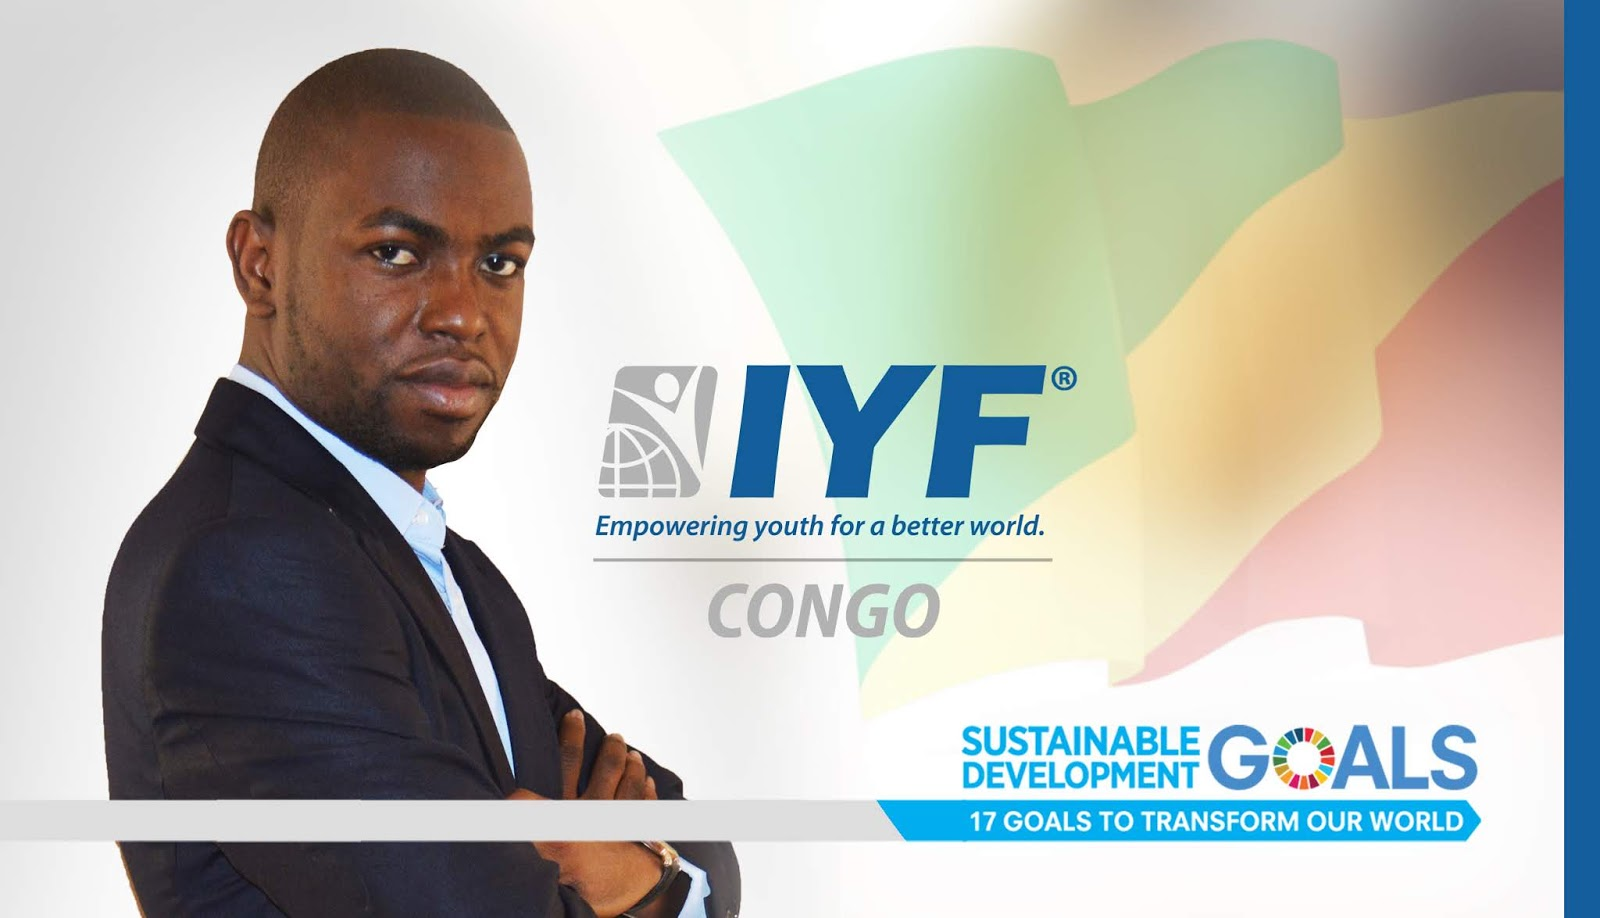 Crys TACKY, IYF Representative in Congo